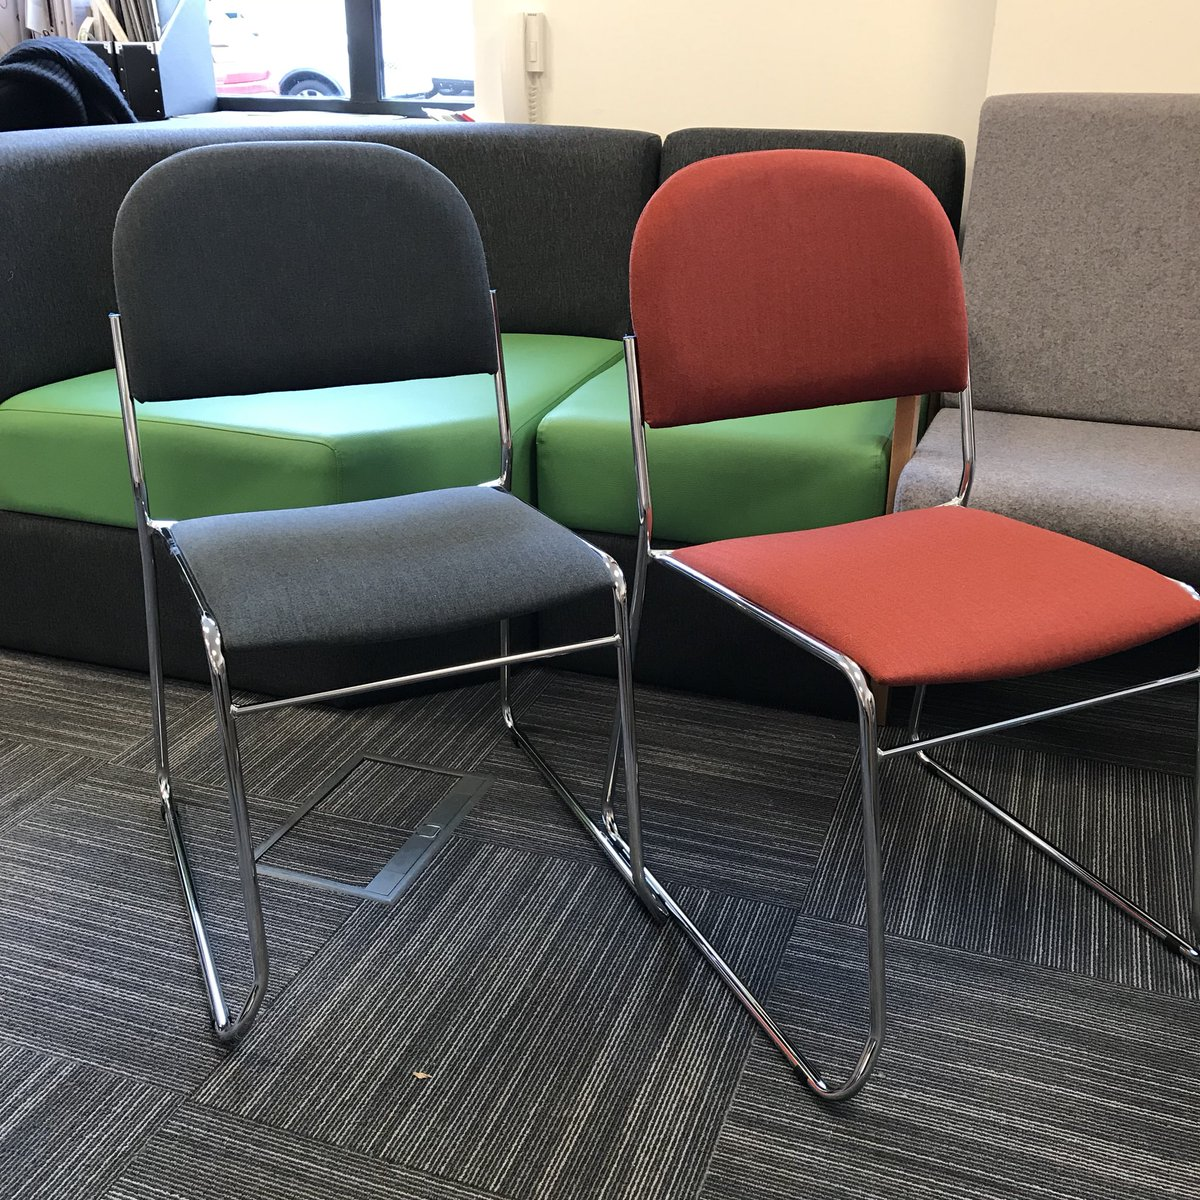 Rosehill Furnishings on Twitter  New #lightweight stacking chair s&les in the showroom looking smart in the #aquaclean Chester fabric rangeu2026   & Rosehill Furnishings on Twitter: